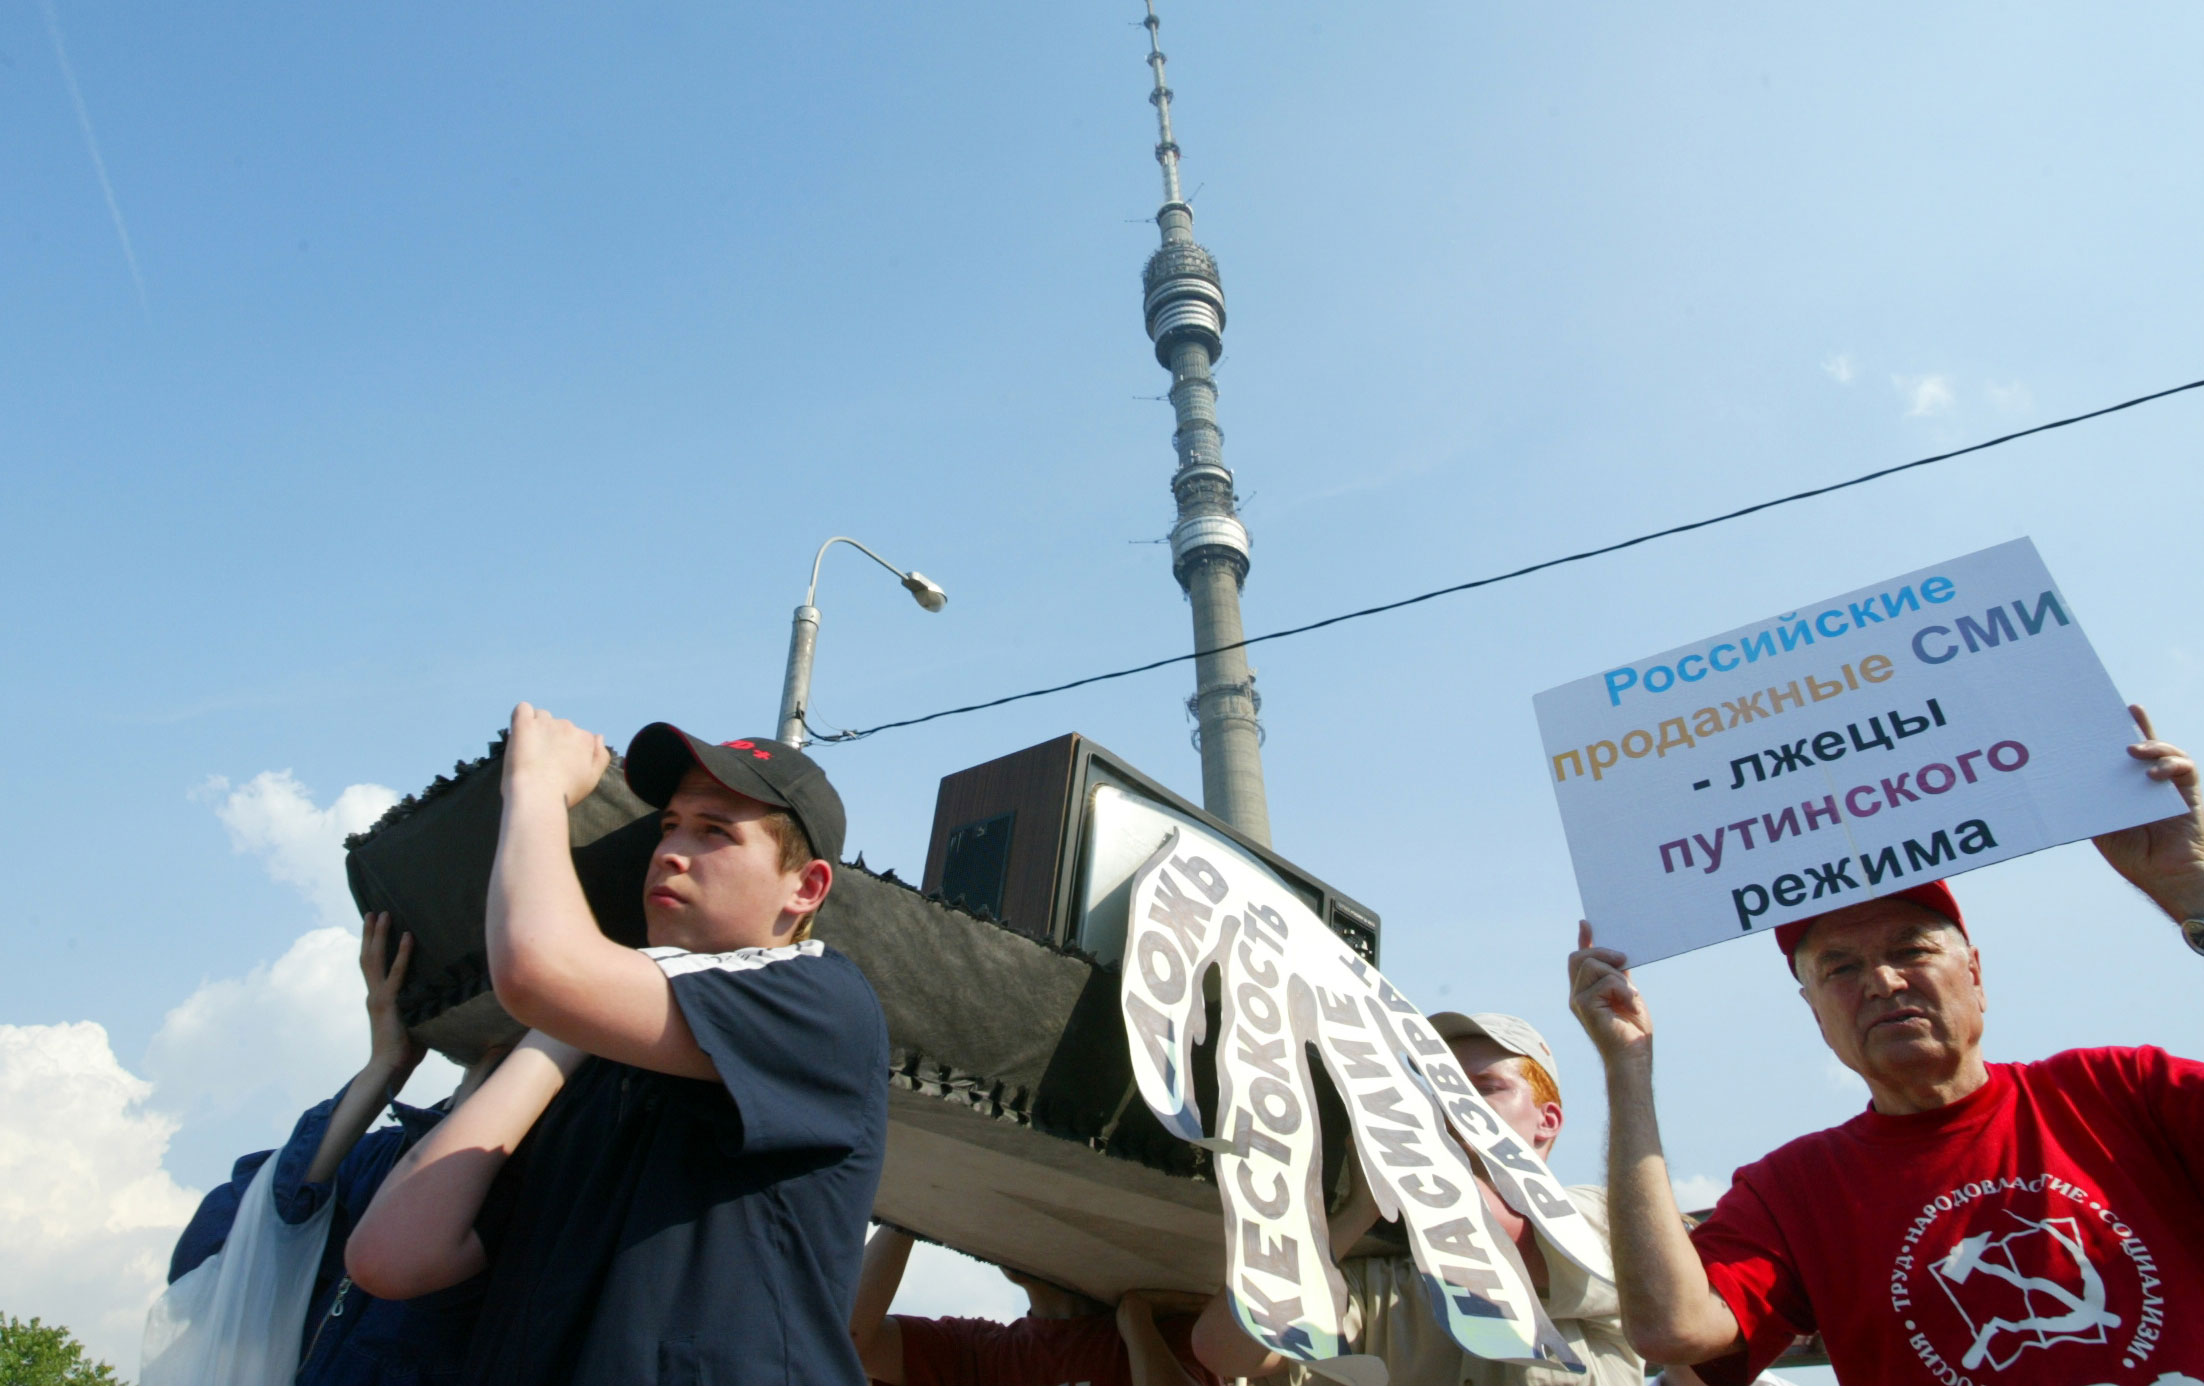 russia-press-freedom-rtr-img